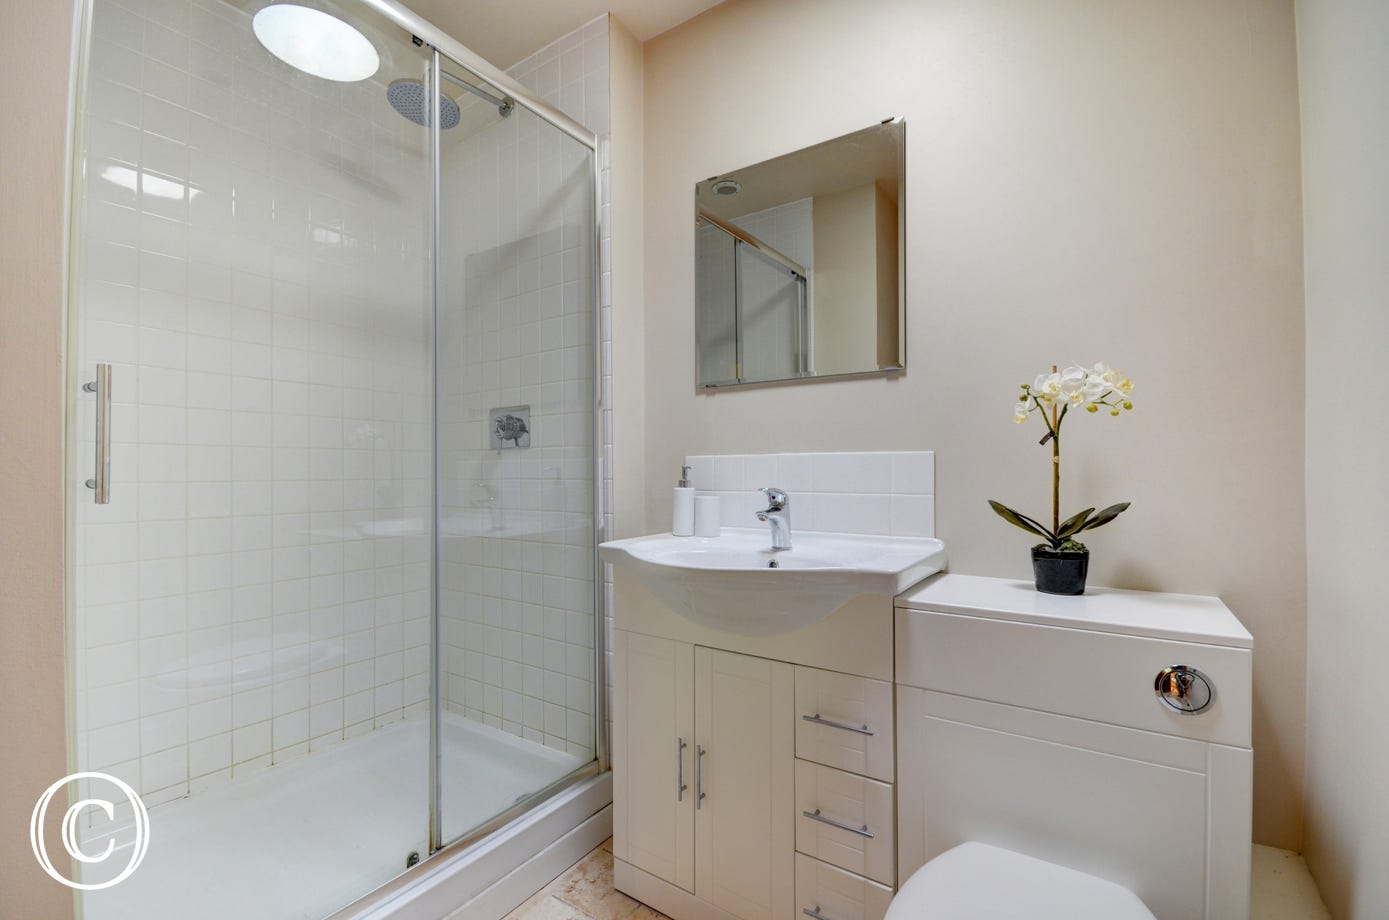 The fully tiled shower room has a large shower enclosure with a sliding glass door